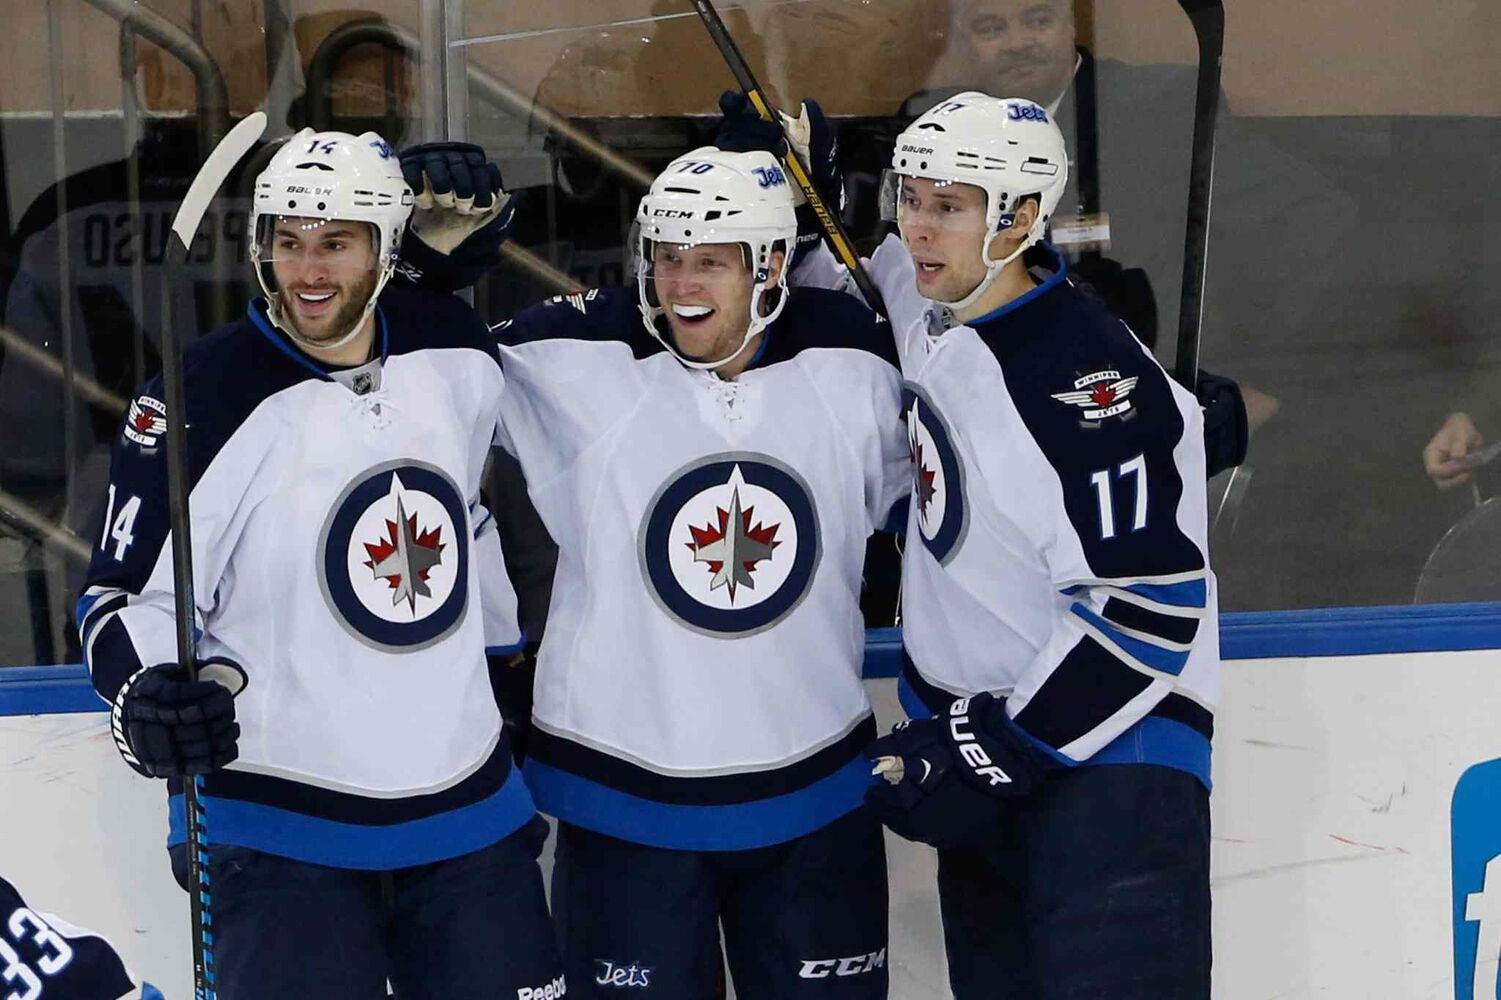 Winnipeg Jets forward John Albert (centre) celebrates his goal with teammates Anthony Peluos (left) and James Wright during the second period. (Anthony Gruppuso / USA Today Sports)